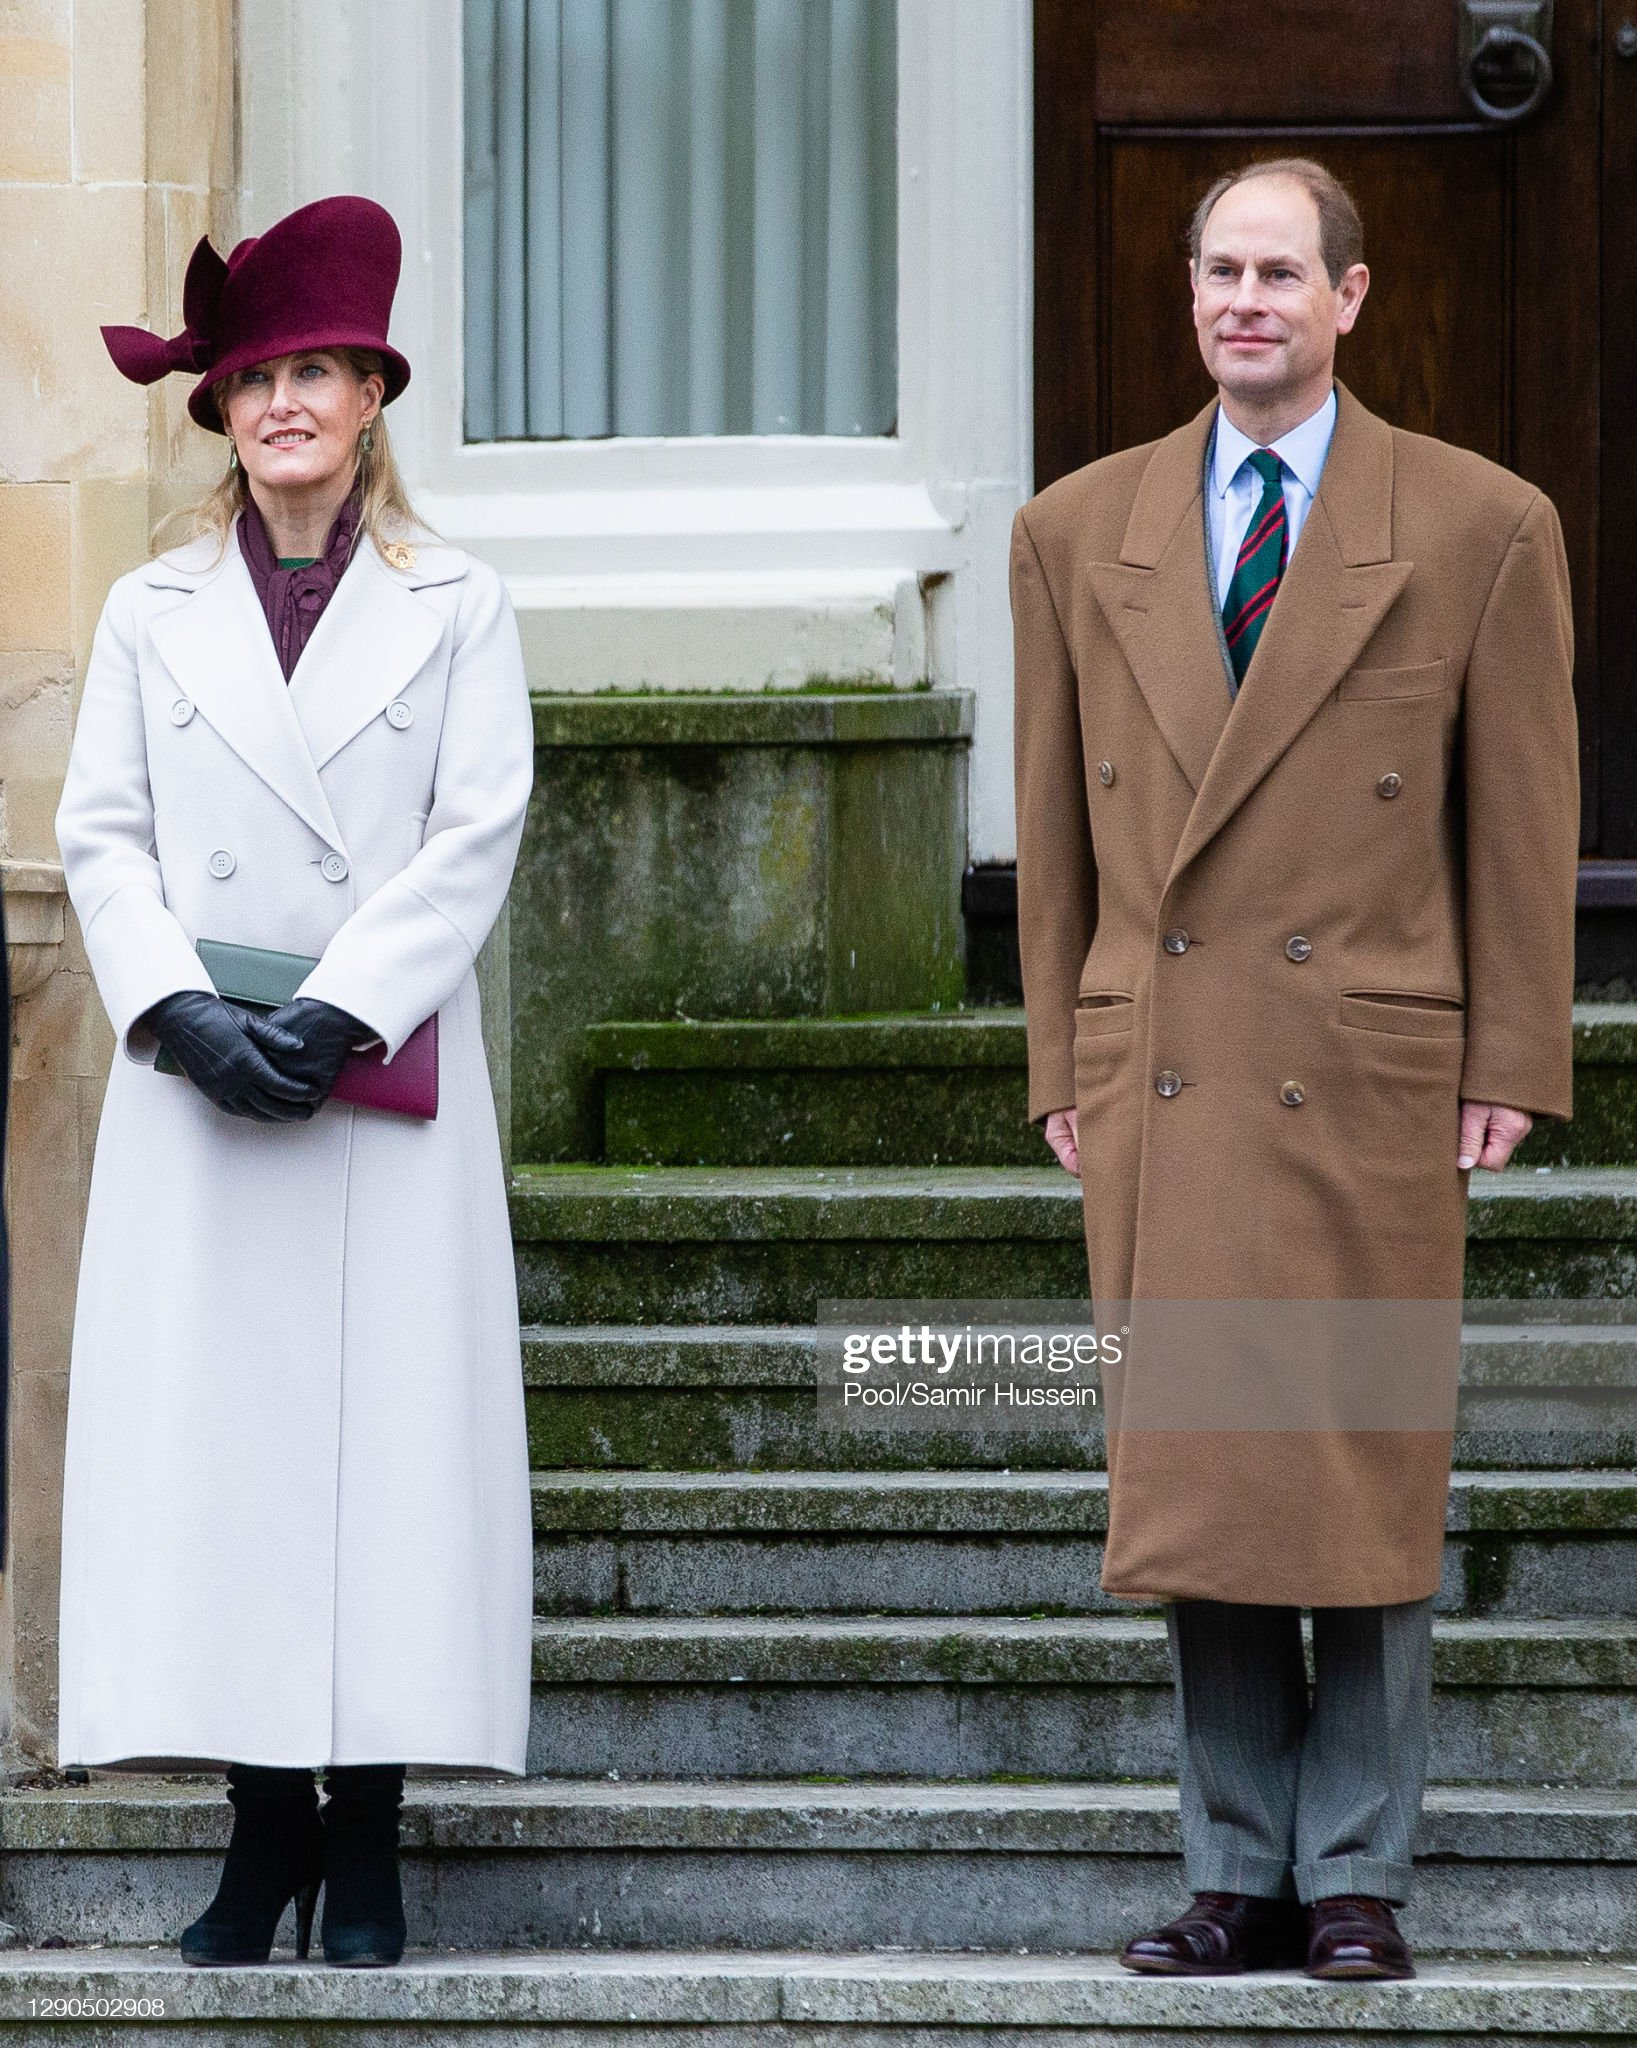 https://media.gettyimages.com/photos/prince-edward-earl-of-wessex-and-sophie-countess-of-wessex-visit-the-picture-id1290502908?s=2048x2048